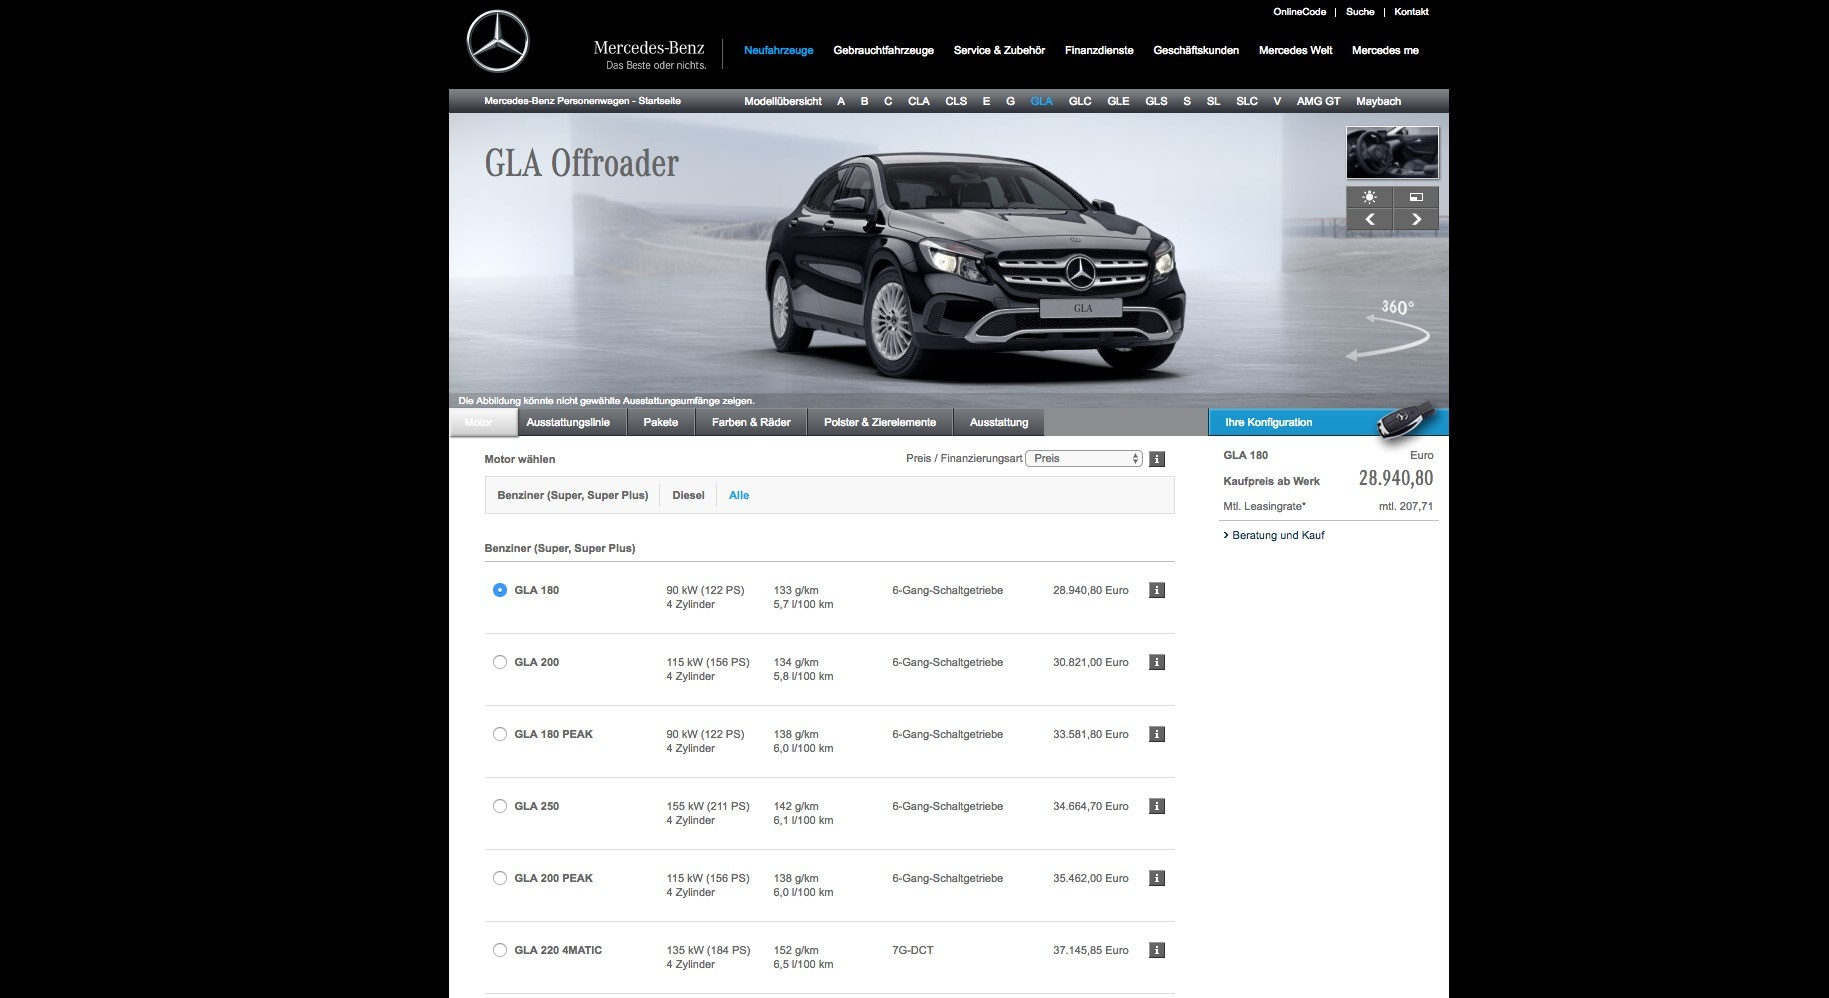 mercedes-benz gla facelift priced from eur 28,940, gla 45 4matic